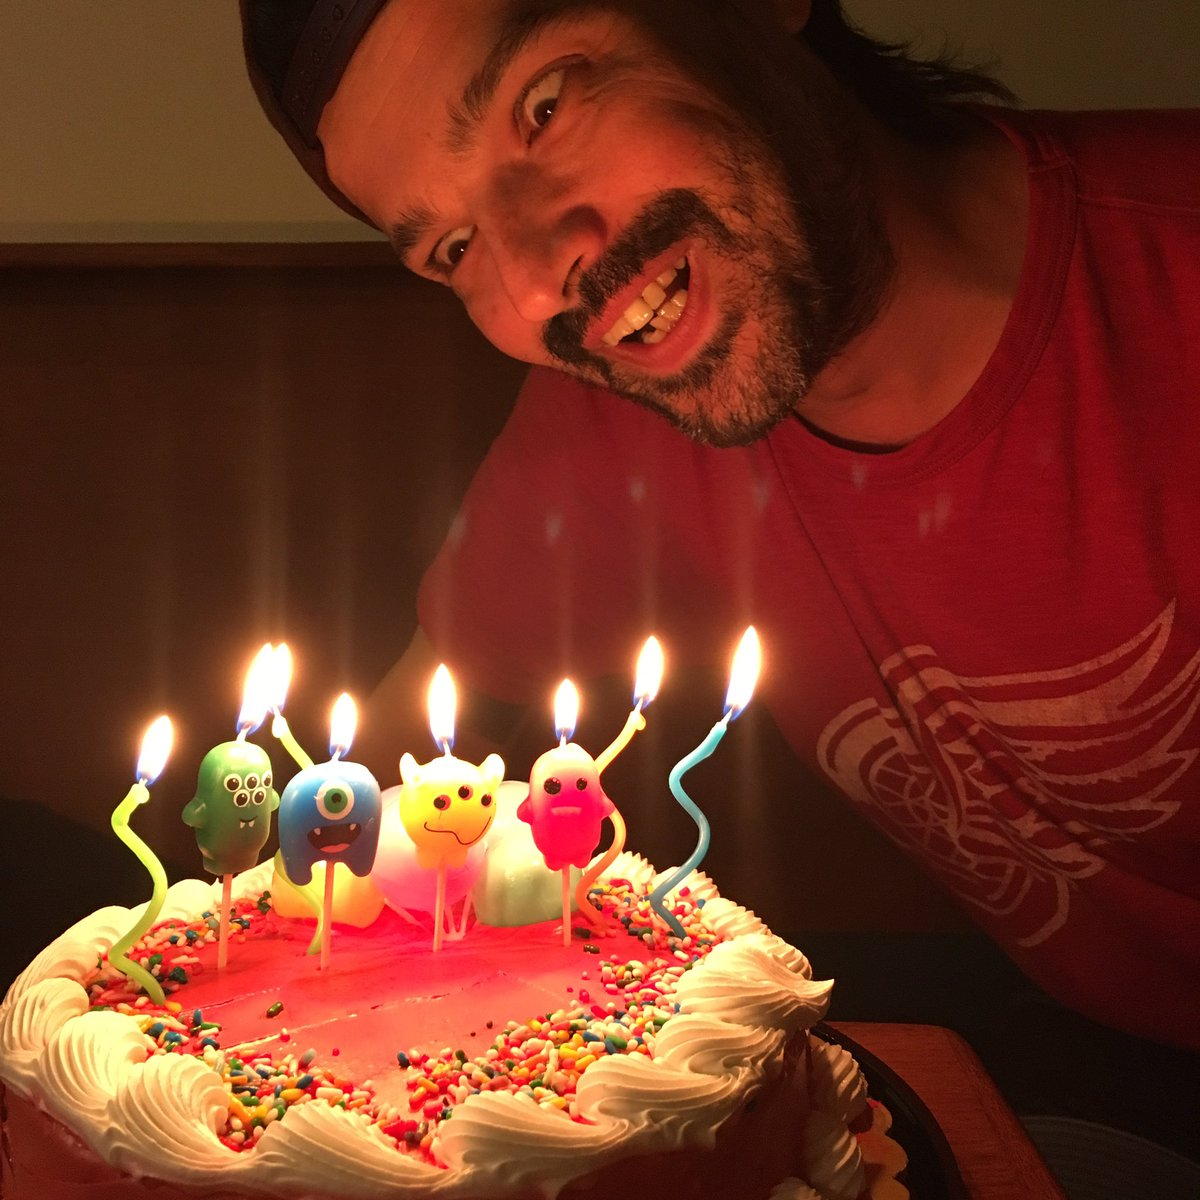 Happy Birthday @tomofromearth ❤️❤️❤️ https://t.co/BIip6SSaQV